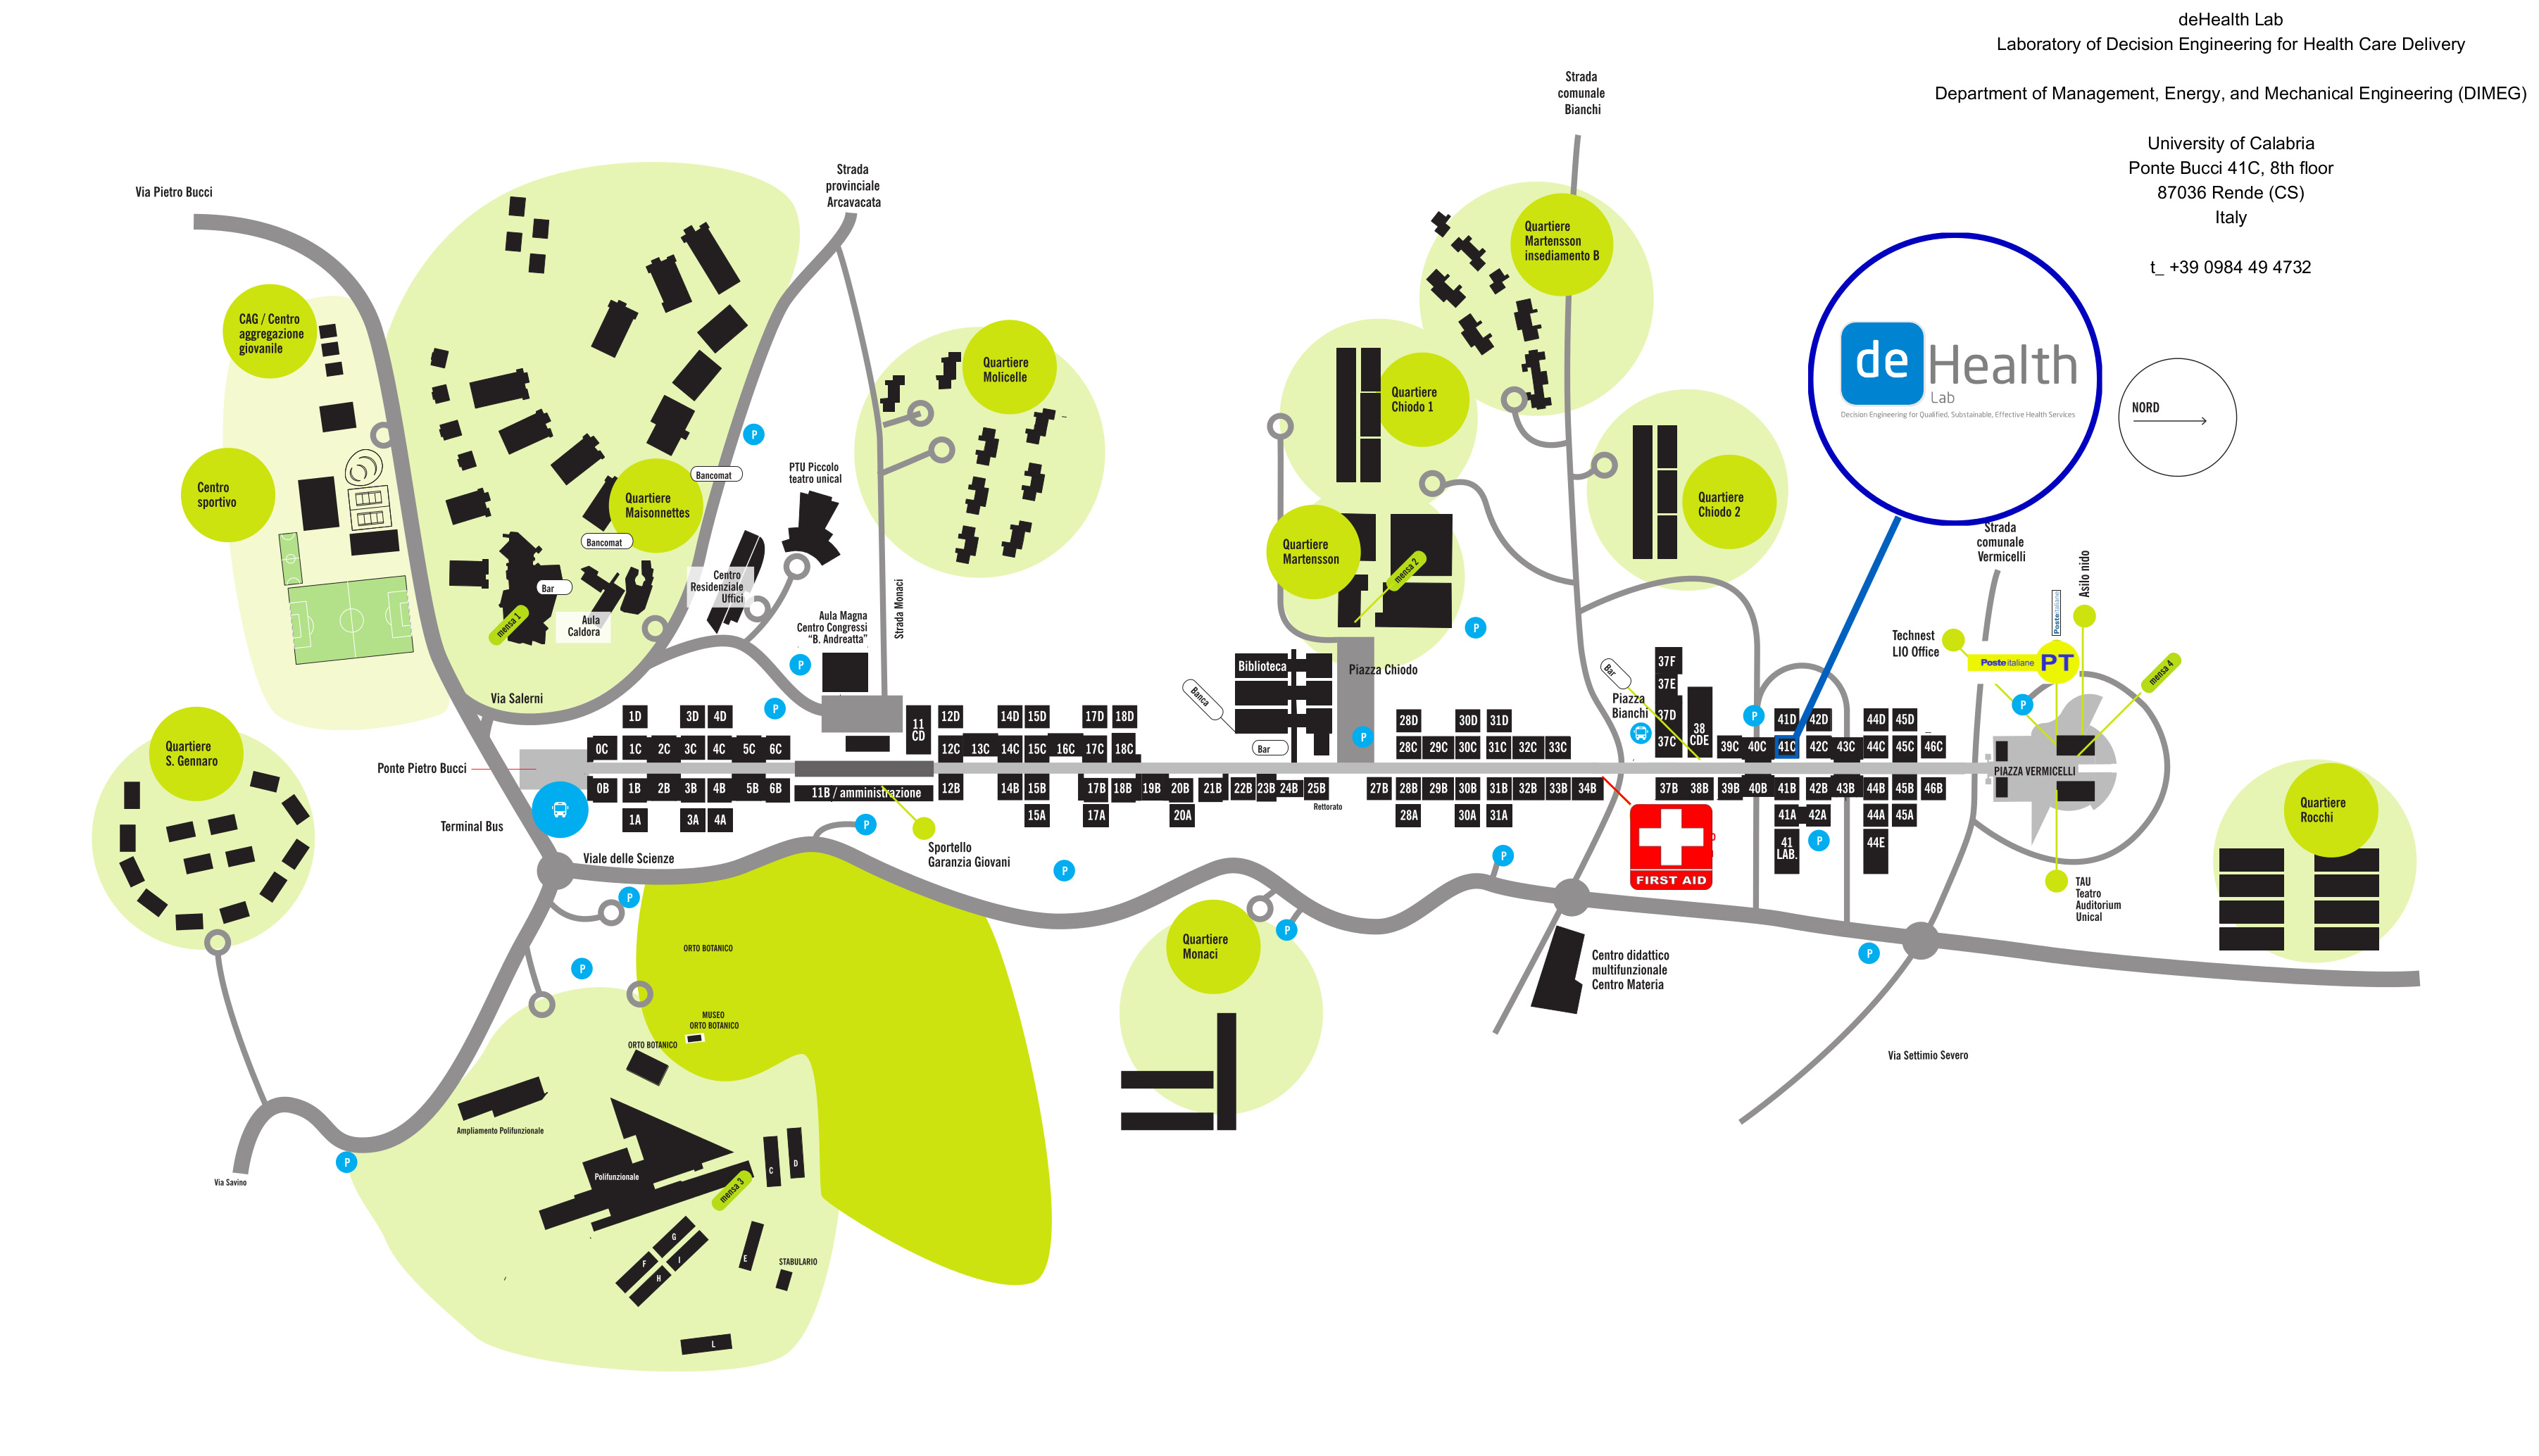 dehealthlab university map